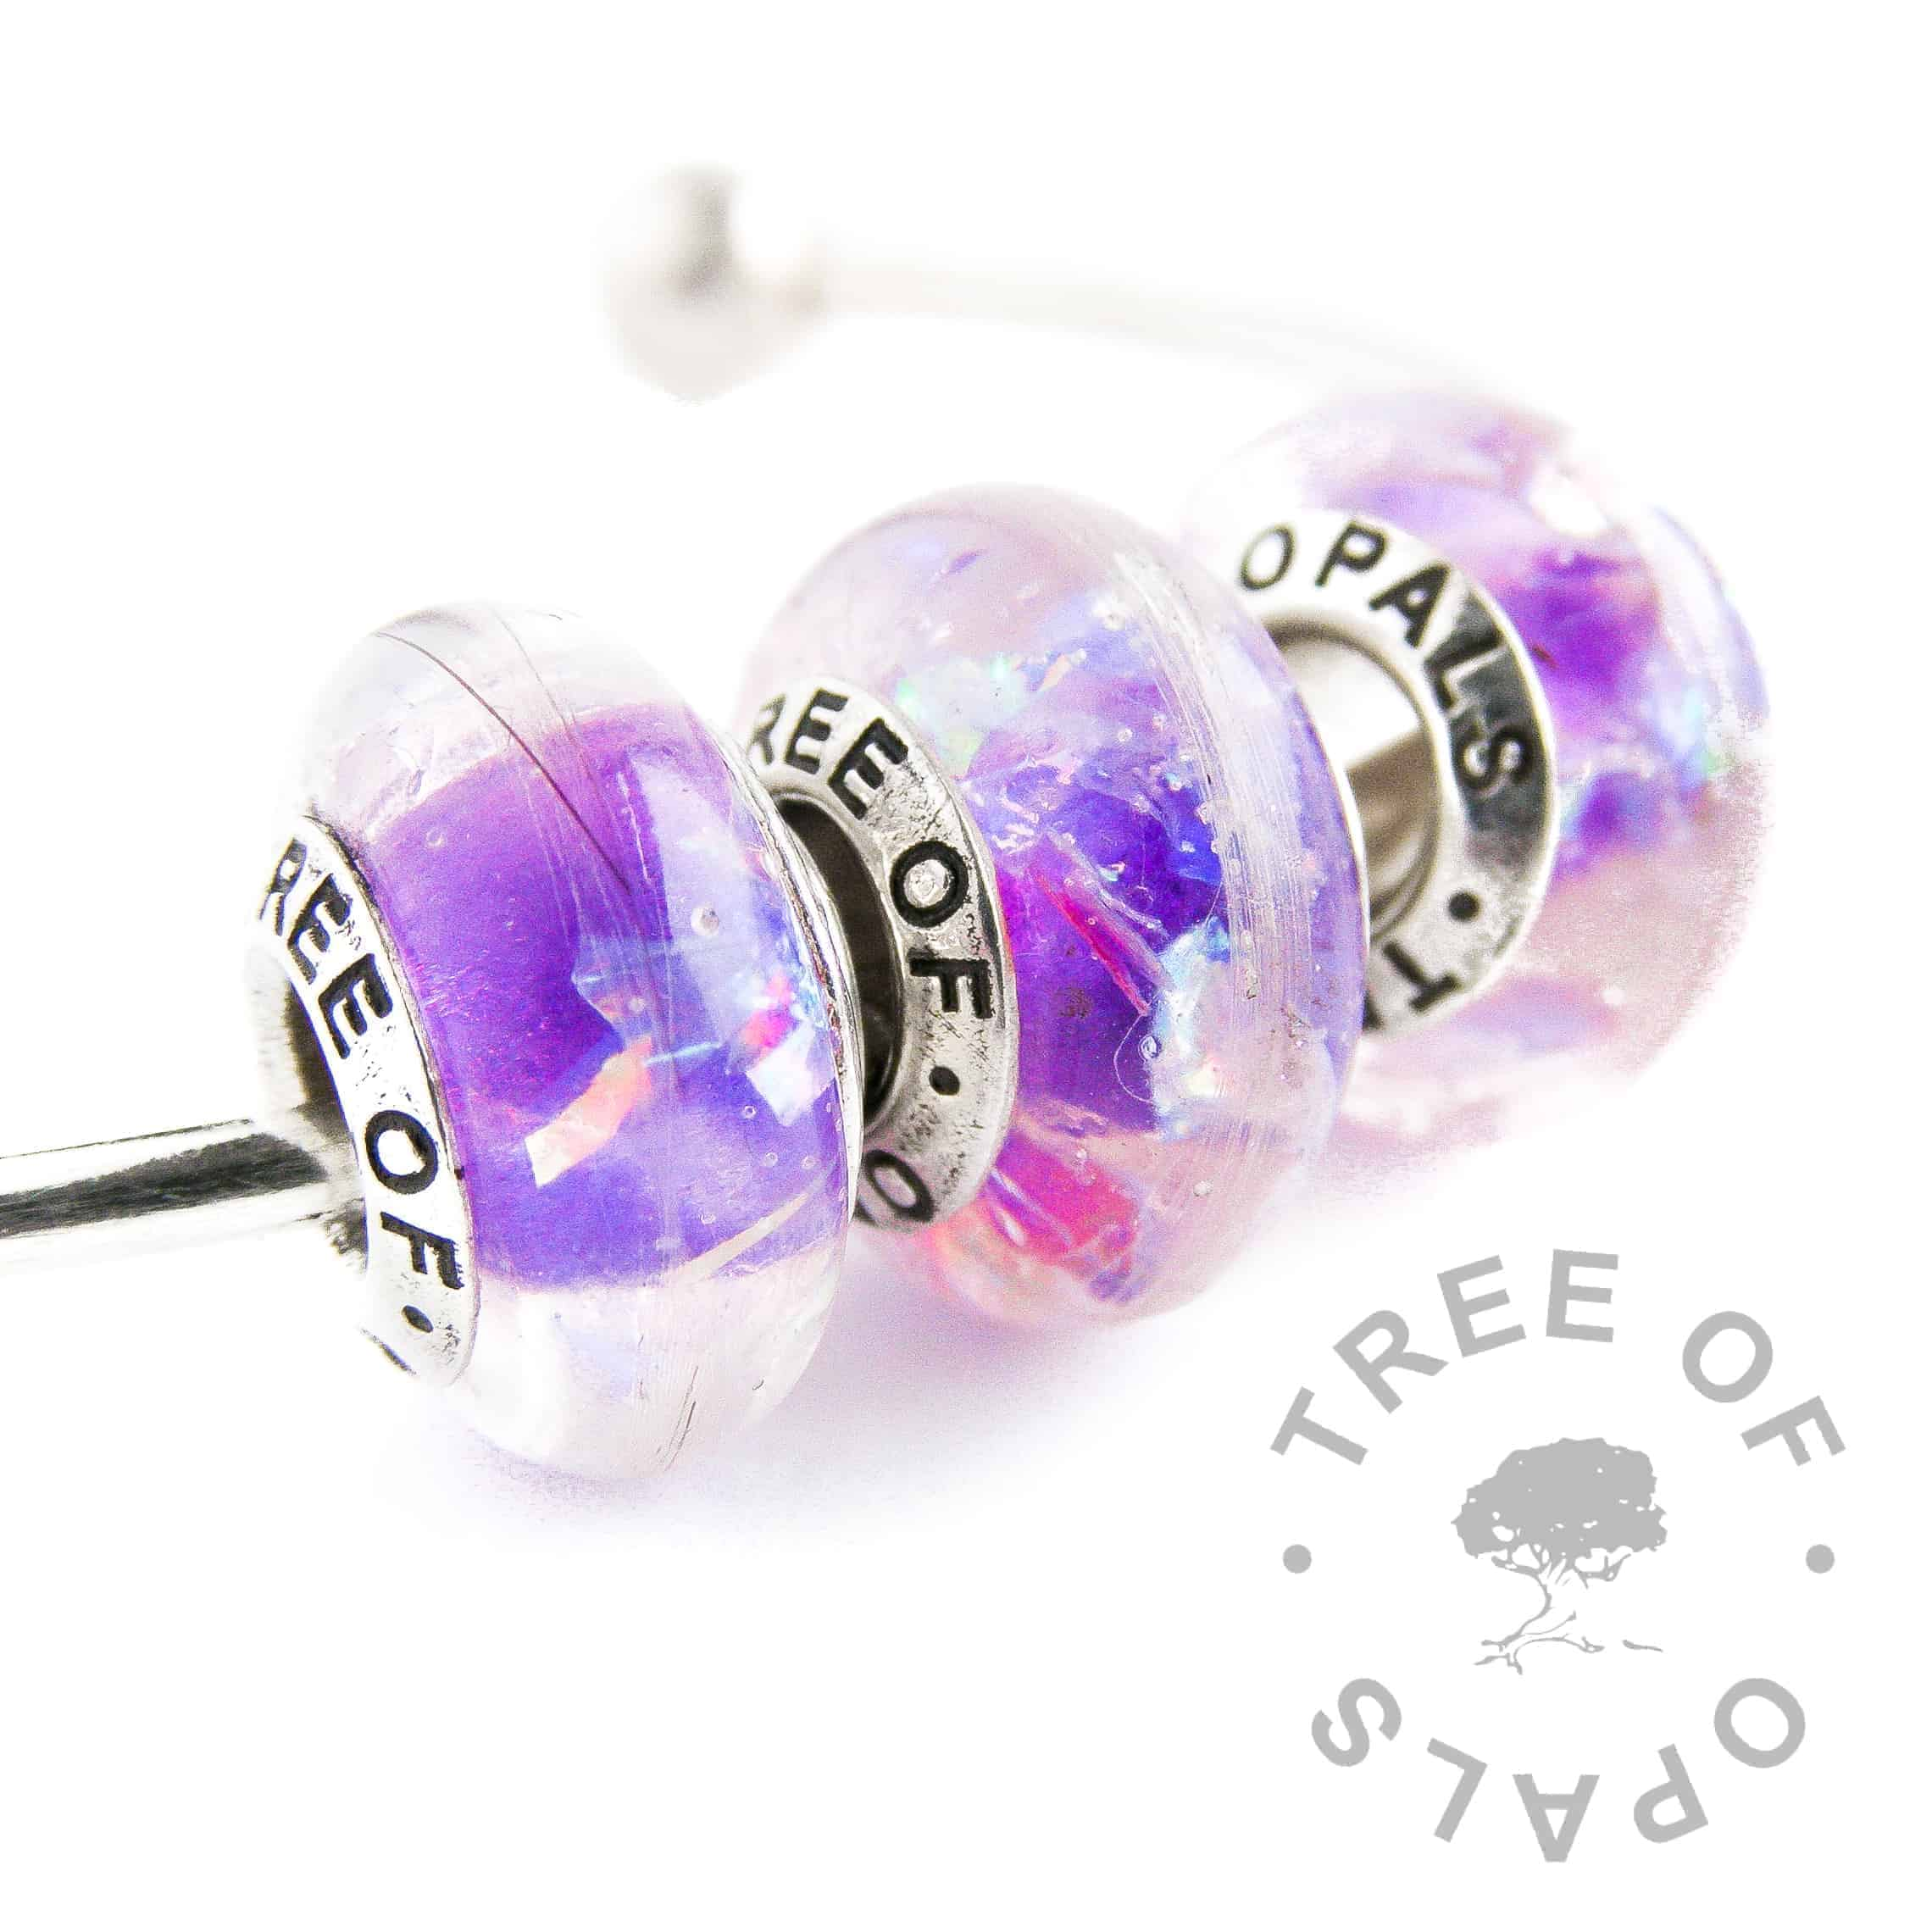 hair charm clear resin purple core and opalescent flakes trio